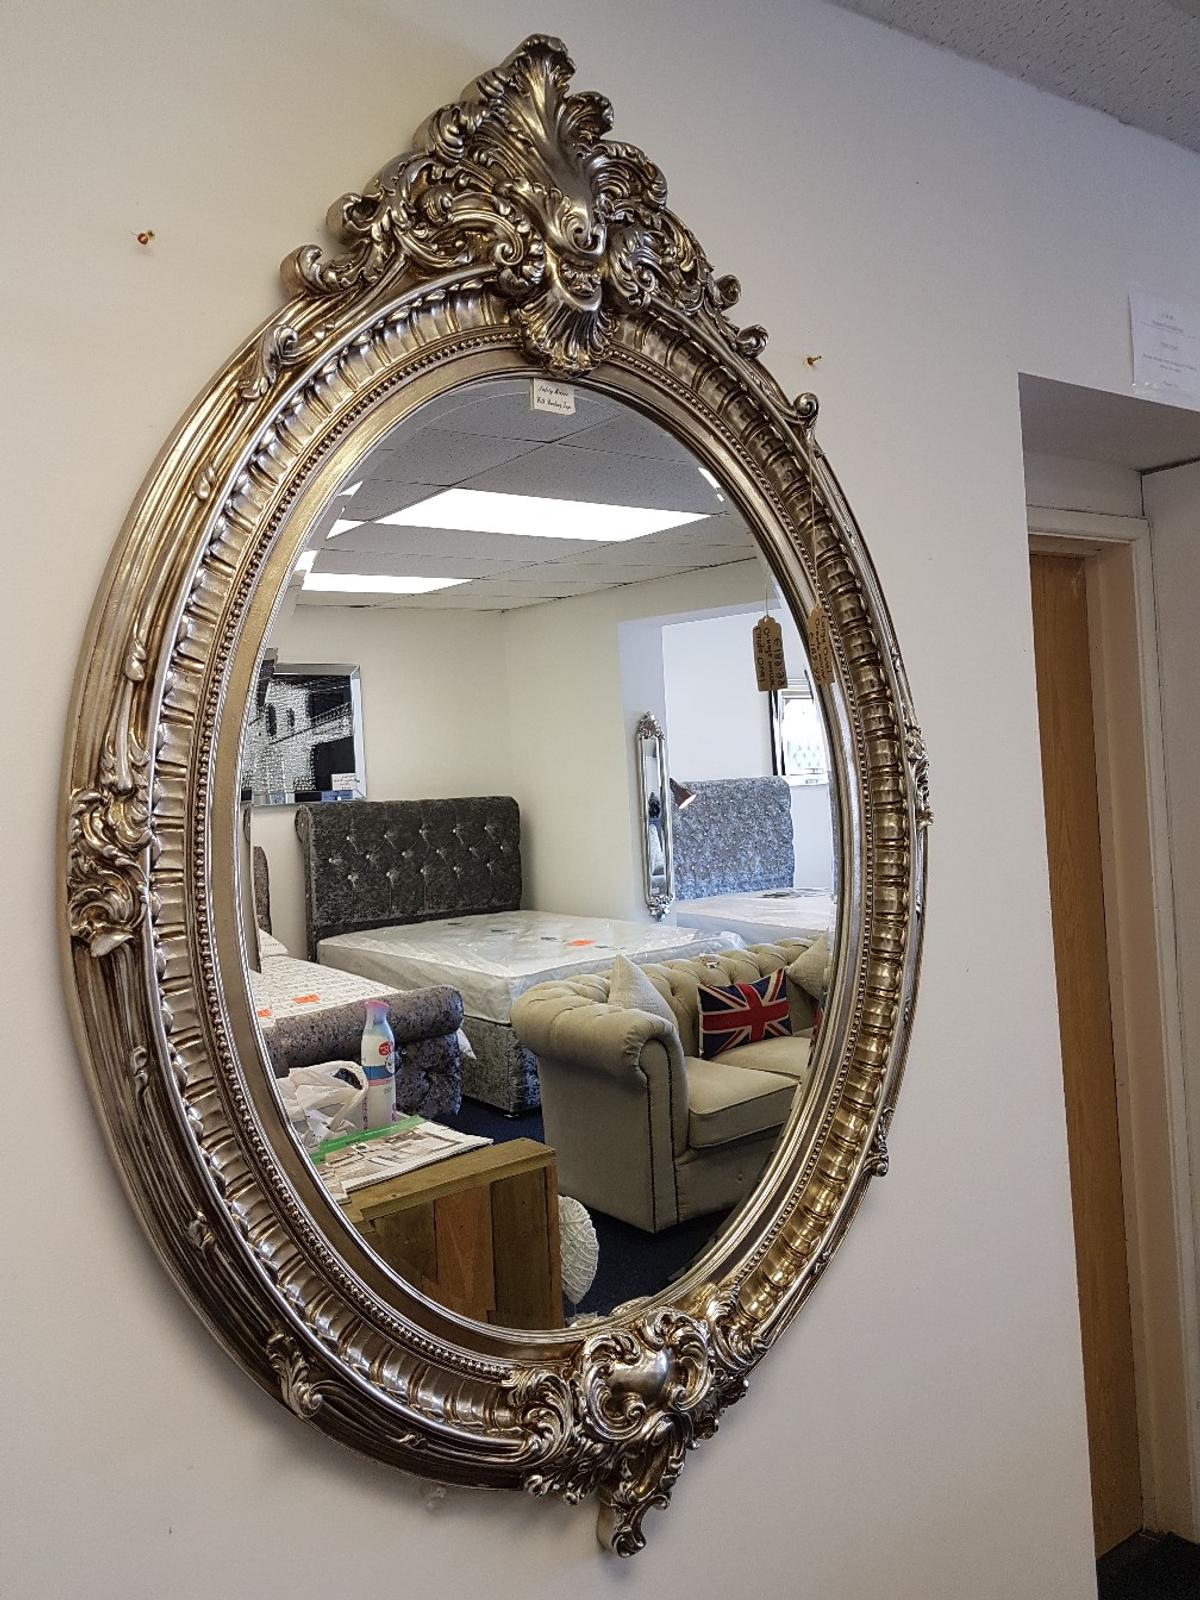 Brand New Ornate Oval Mirror In Champagne In L36 Liverpool For 125 00 For Sale Shpock